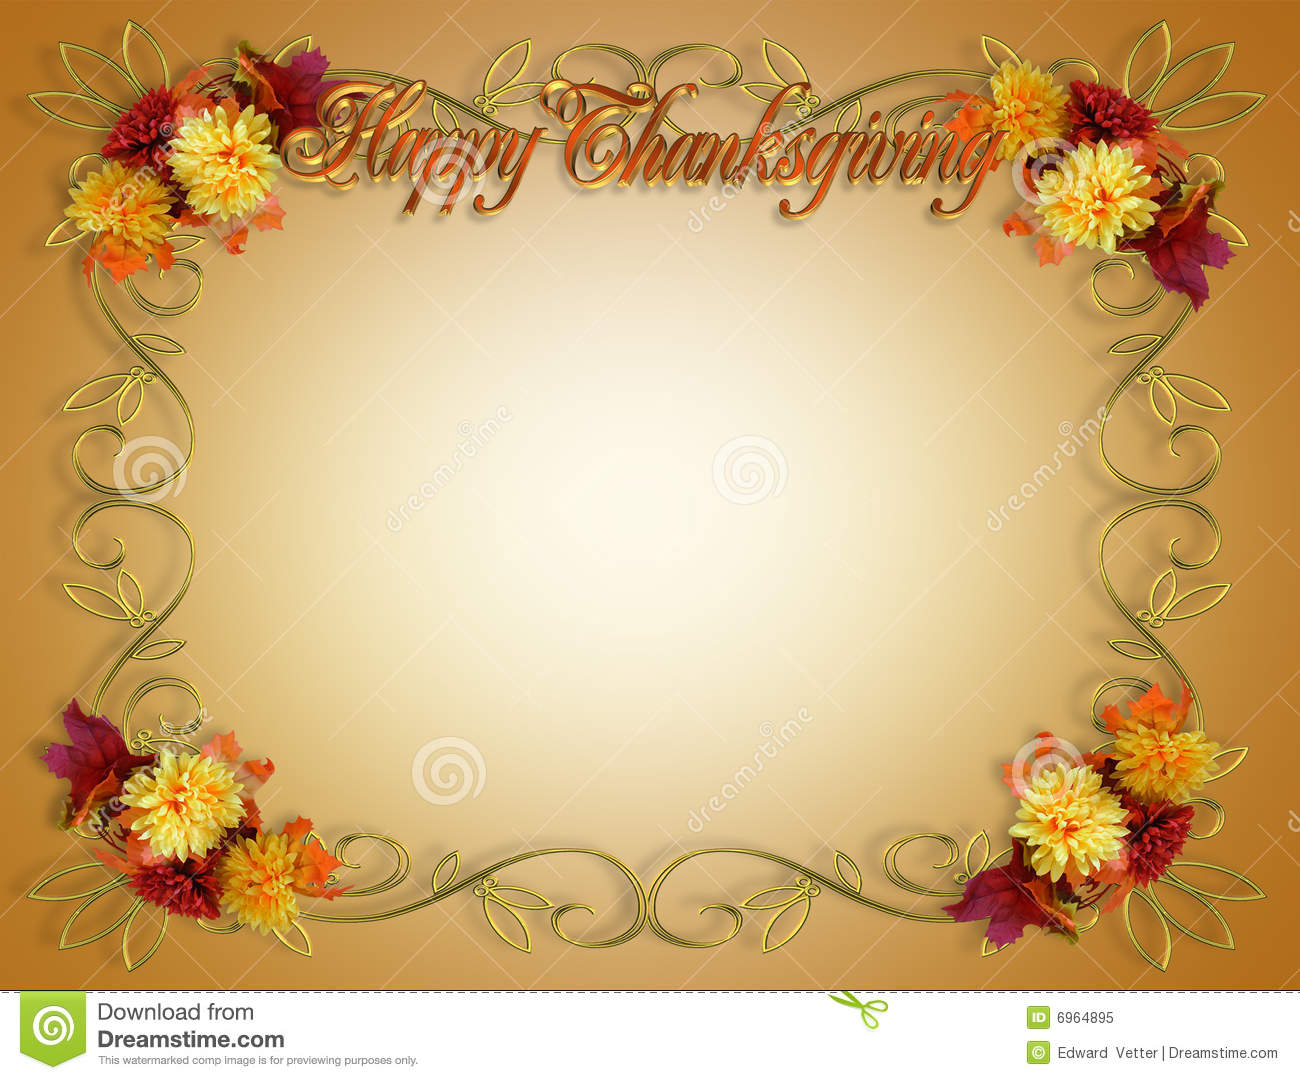 Thanksgiving Clip Art Borders - Free Thanksgiving Clip Art Borders